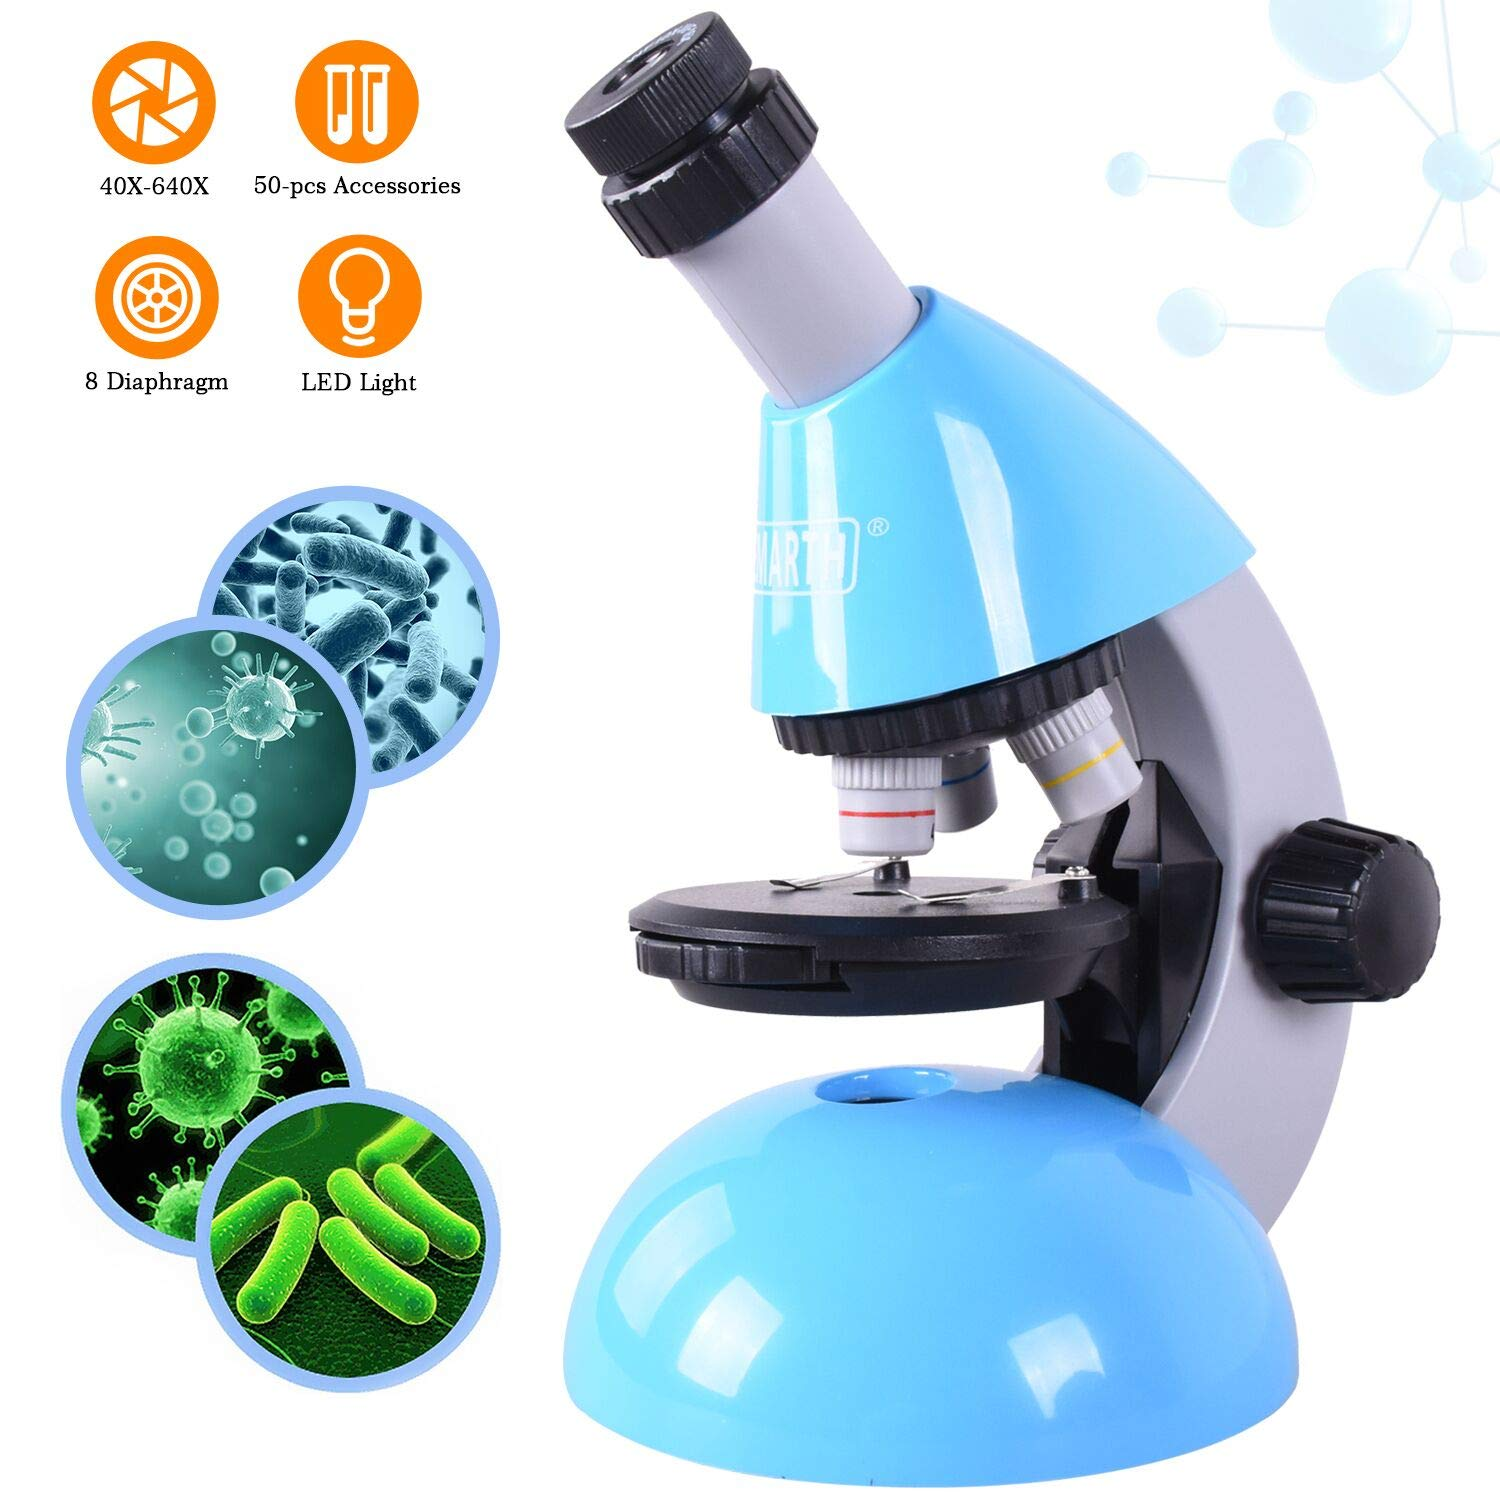 Elecfly Microscope, Kids Microscope 40X- 640X Magnification with 50 pcs Science Kits Beginner Microscopes Includes 25 Specimen Sliders for Students Children Age 5+